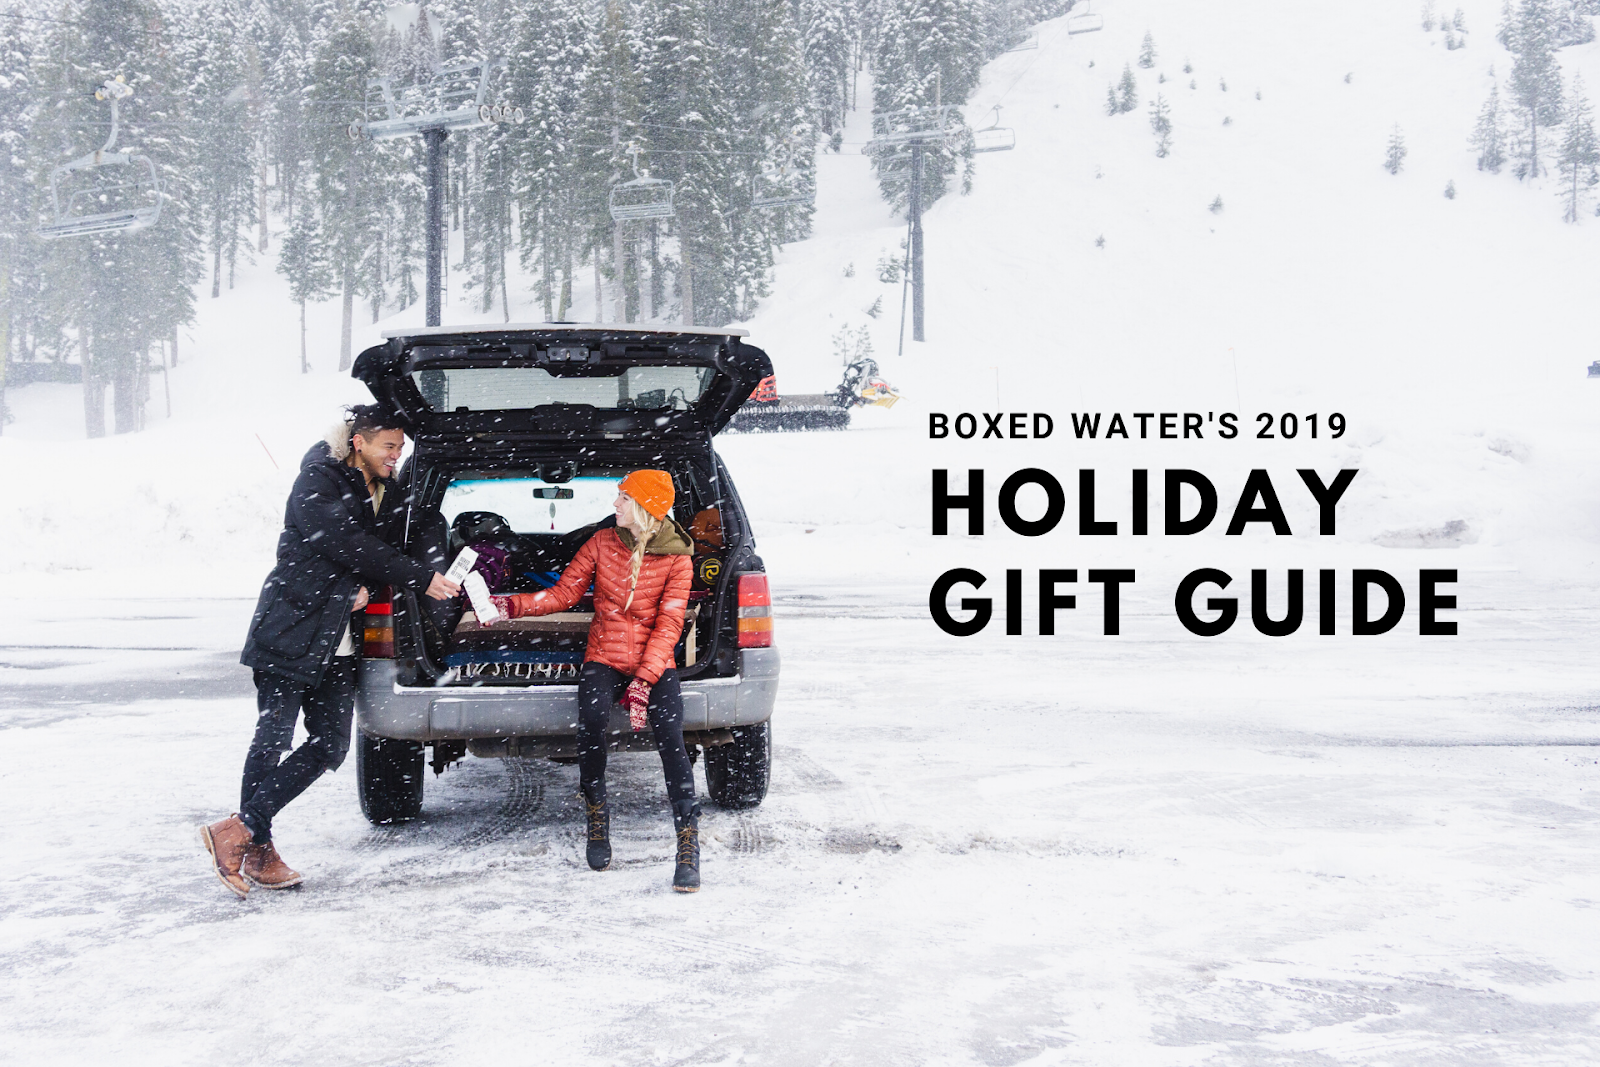 Boxed Water's Better 2019 Holiday Gift Guide